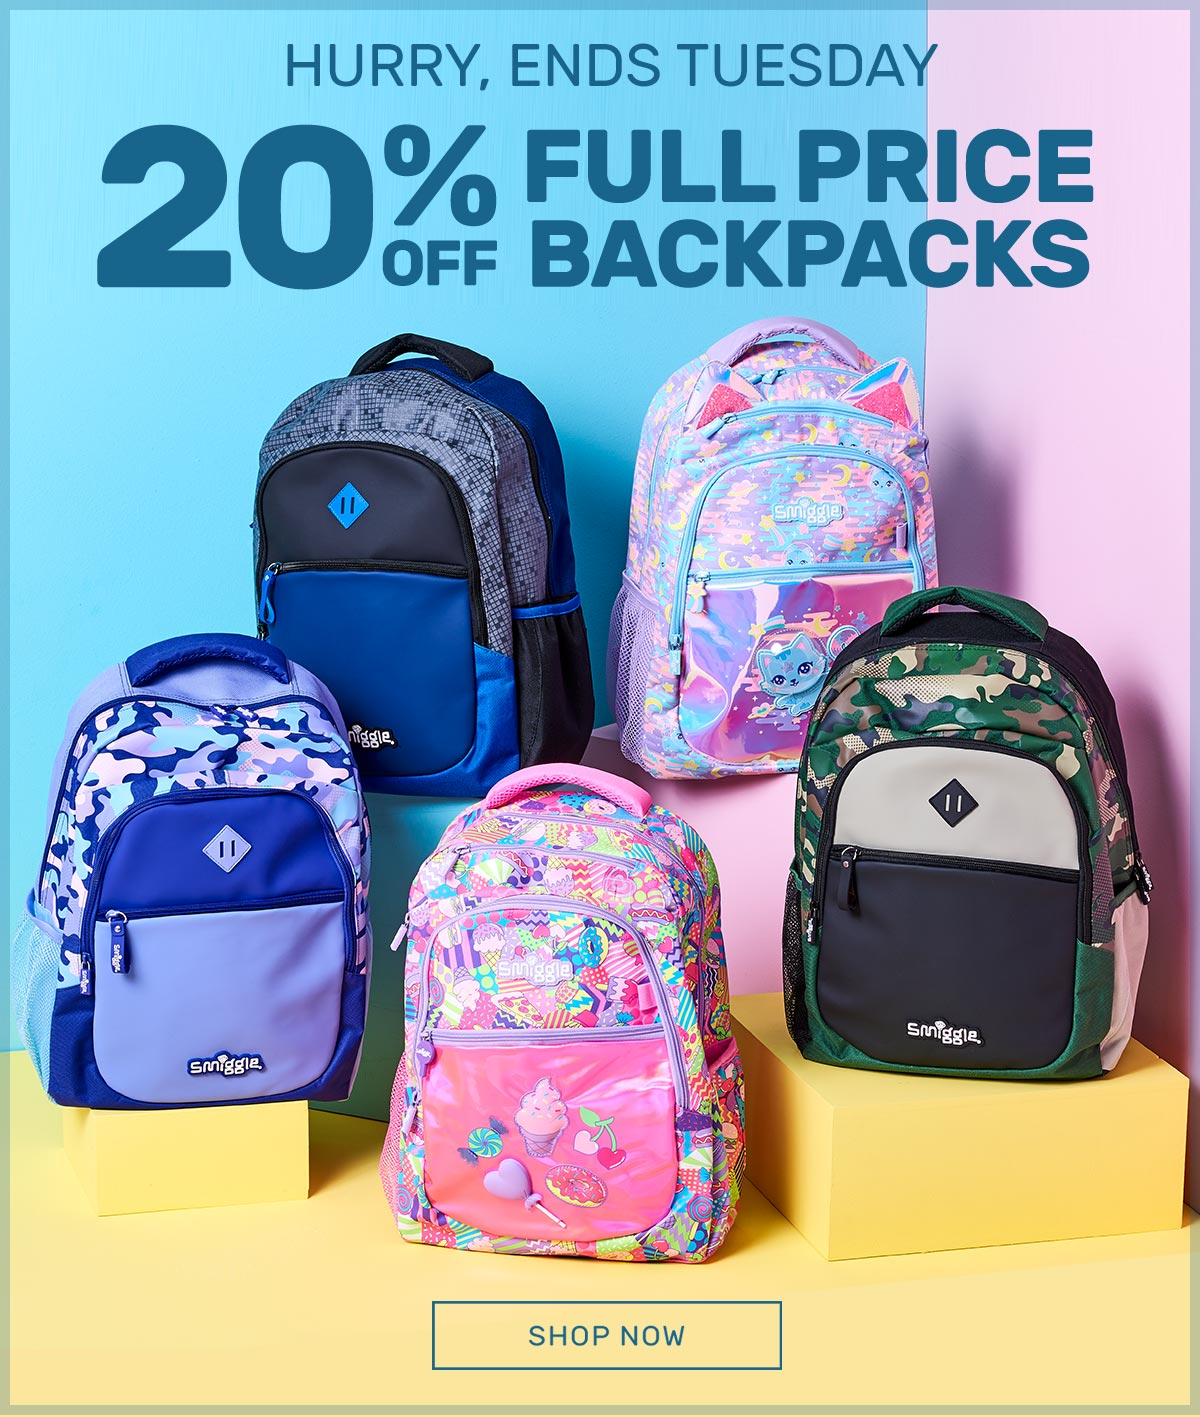 Smiggle carsJunior Backpack grey new plus free gifts Perfect Gift!